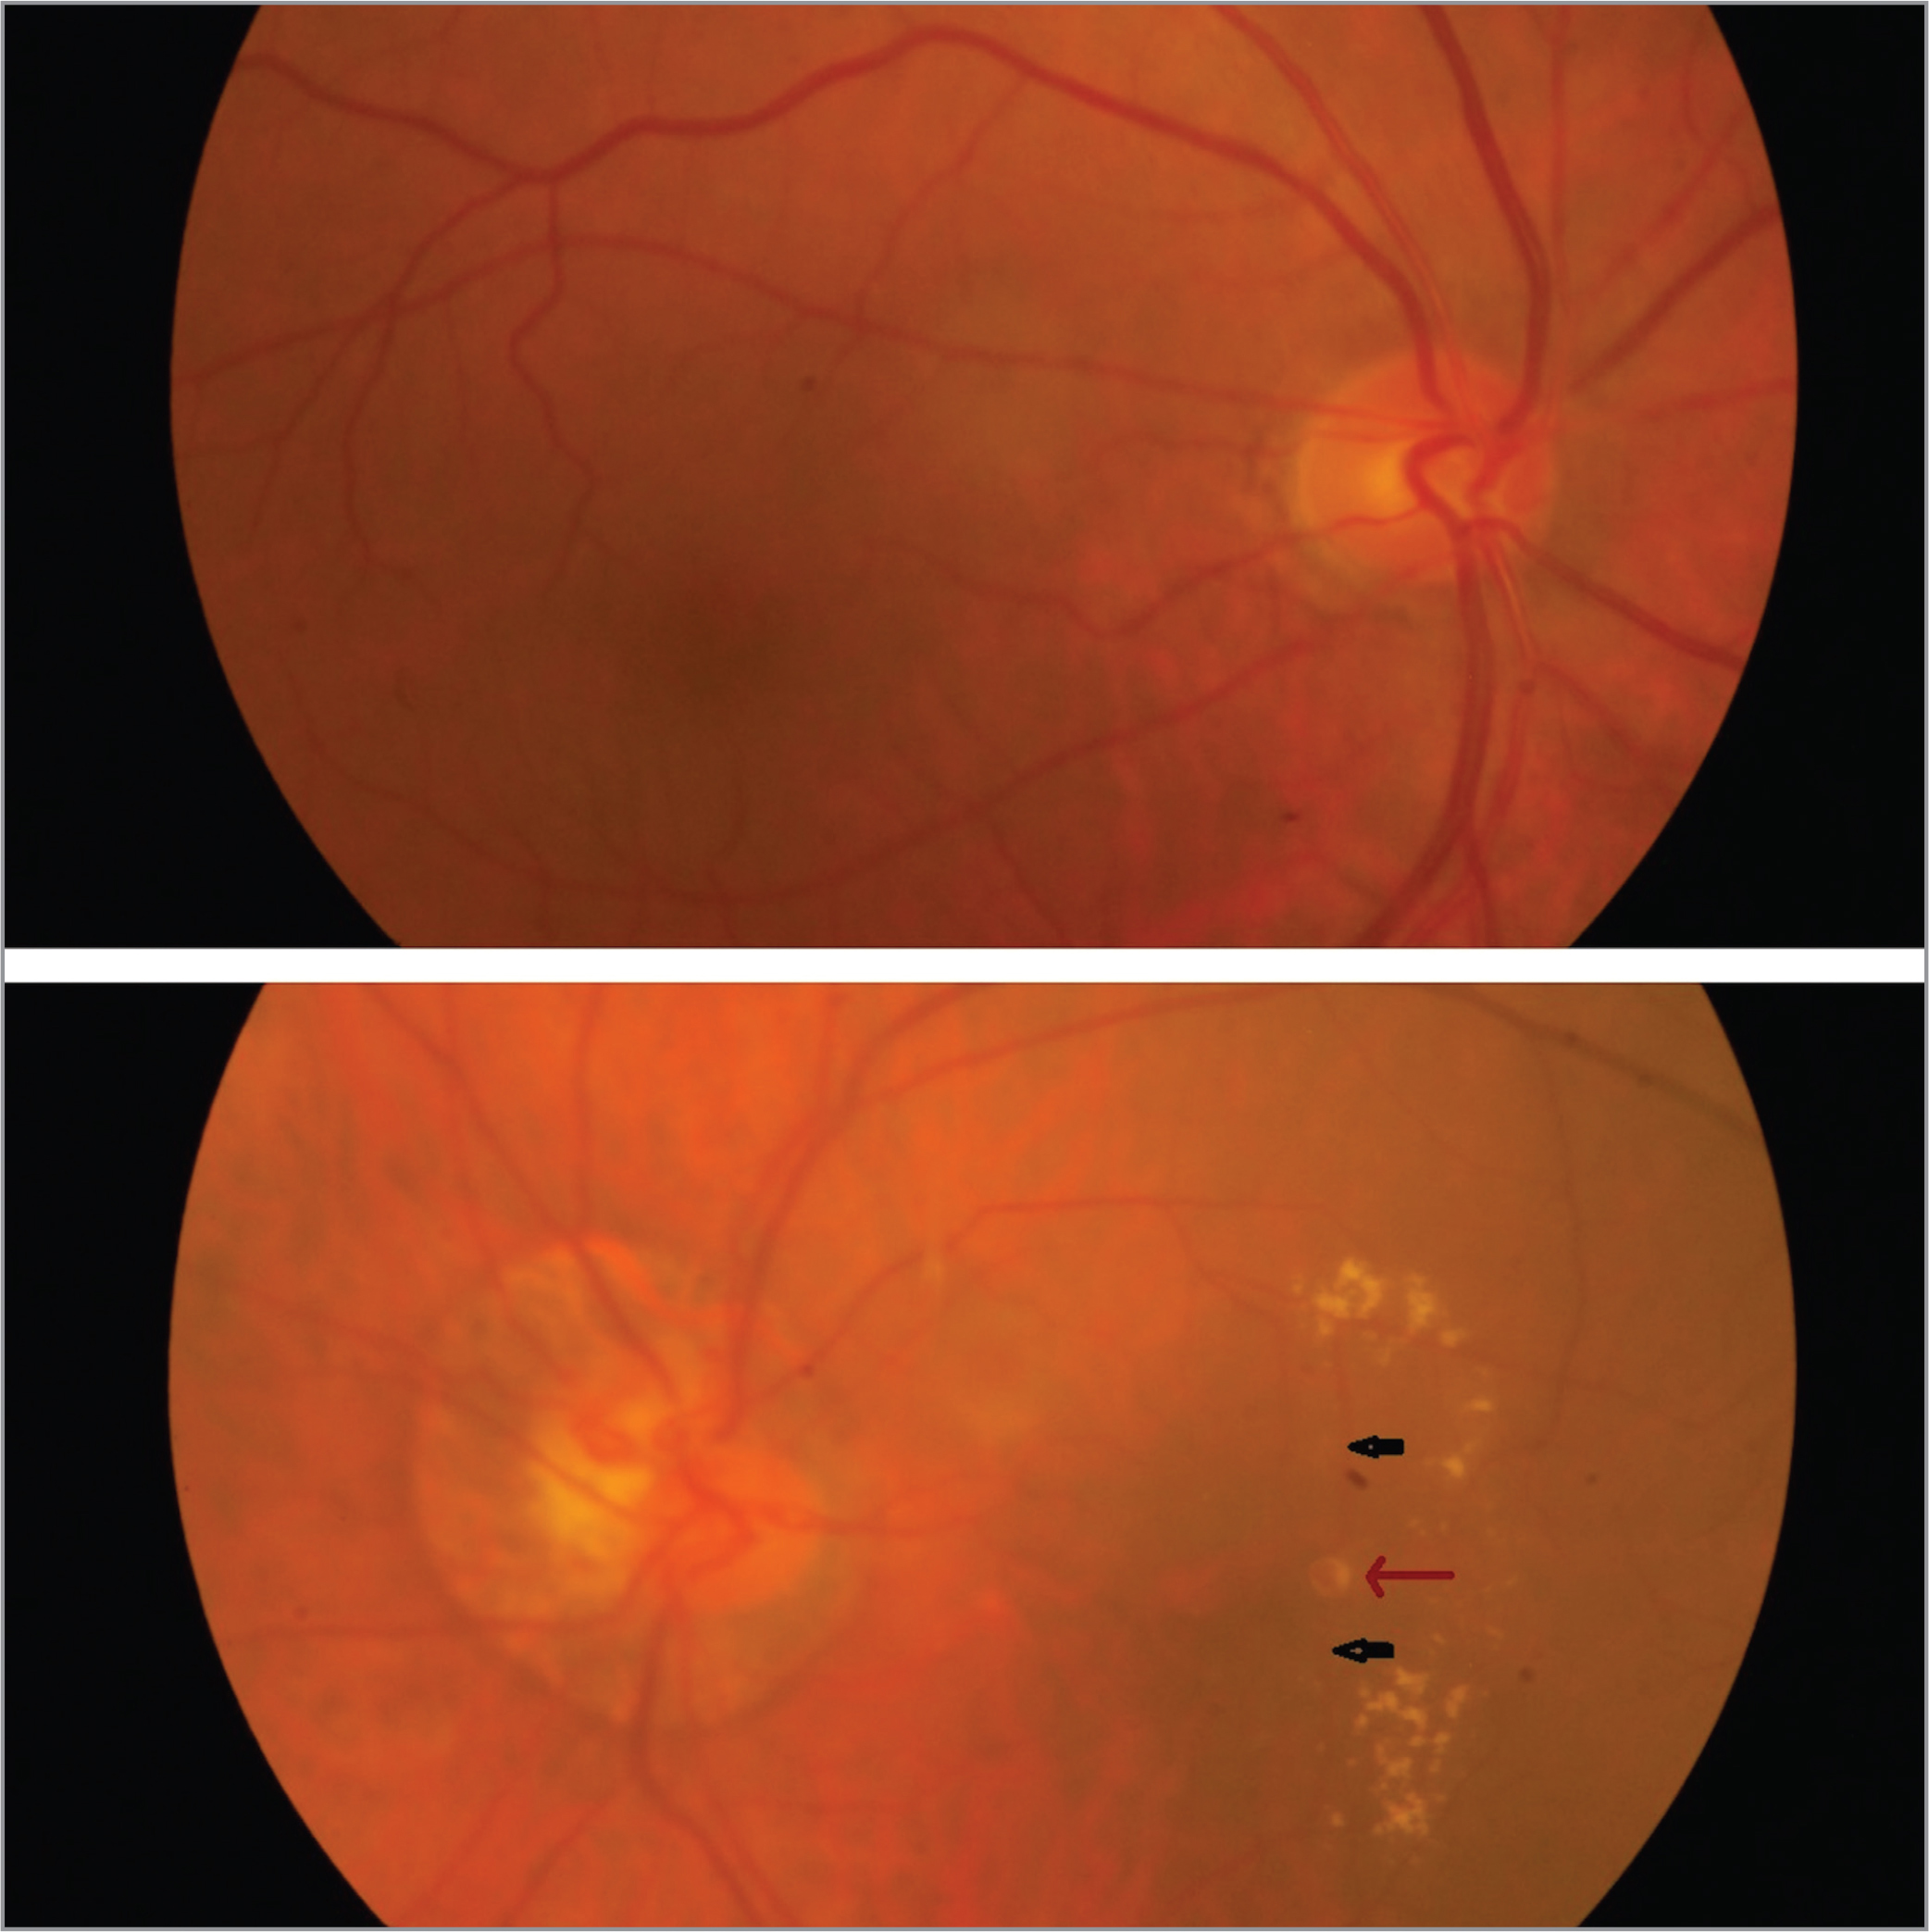 (Top) Normal right eye. (Bottom) Peripapillary staphyloma and arterial loops seen in the left eye. Right-angled straightened arterioles (black arrows) bending into a dilated aneurysmal bulge.